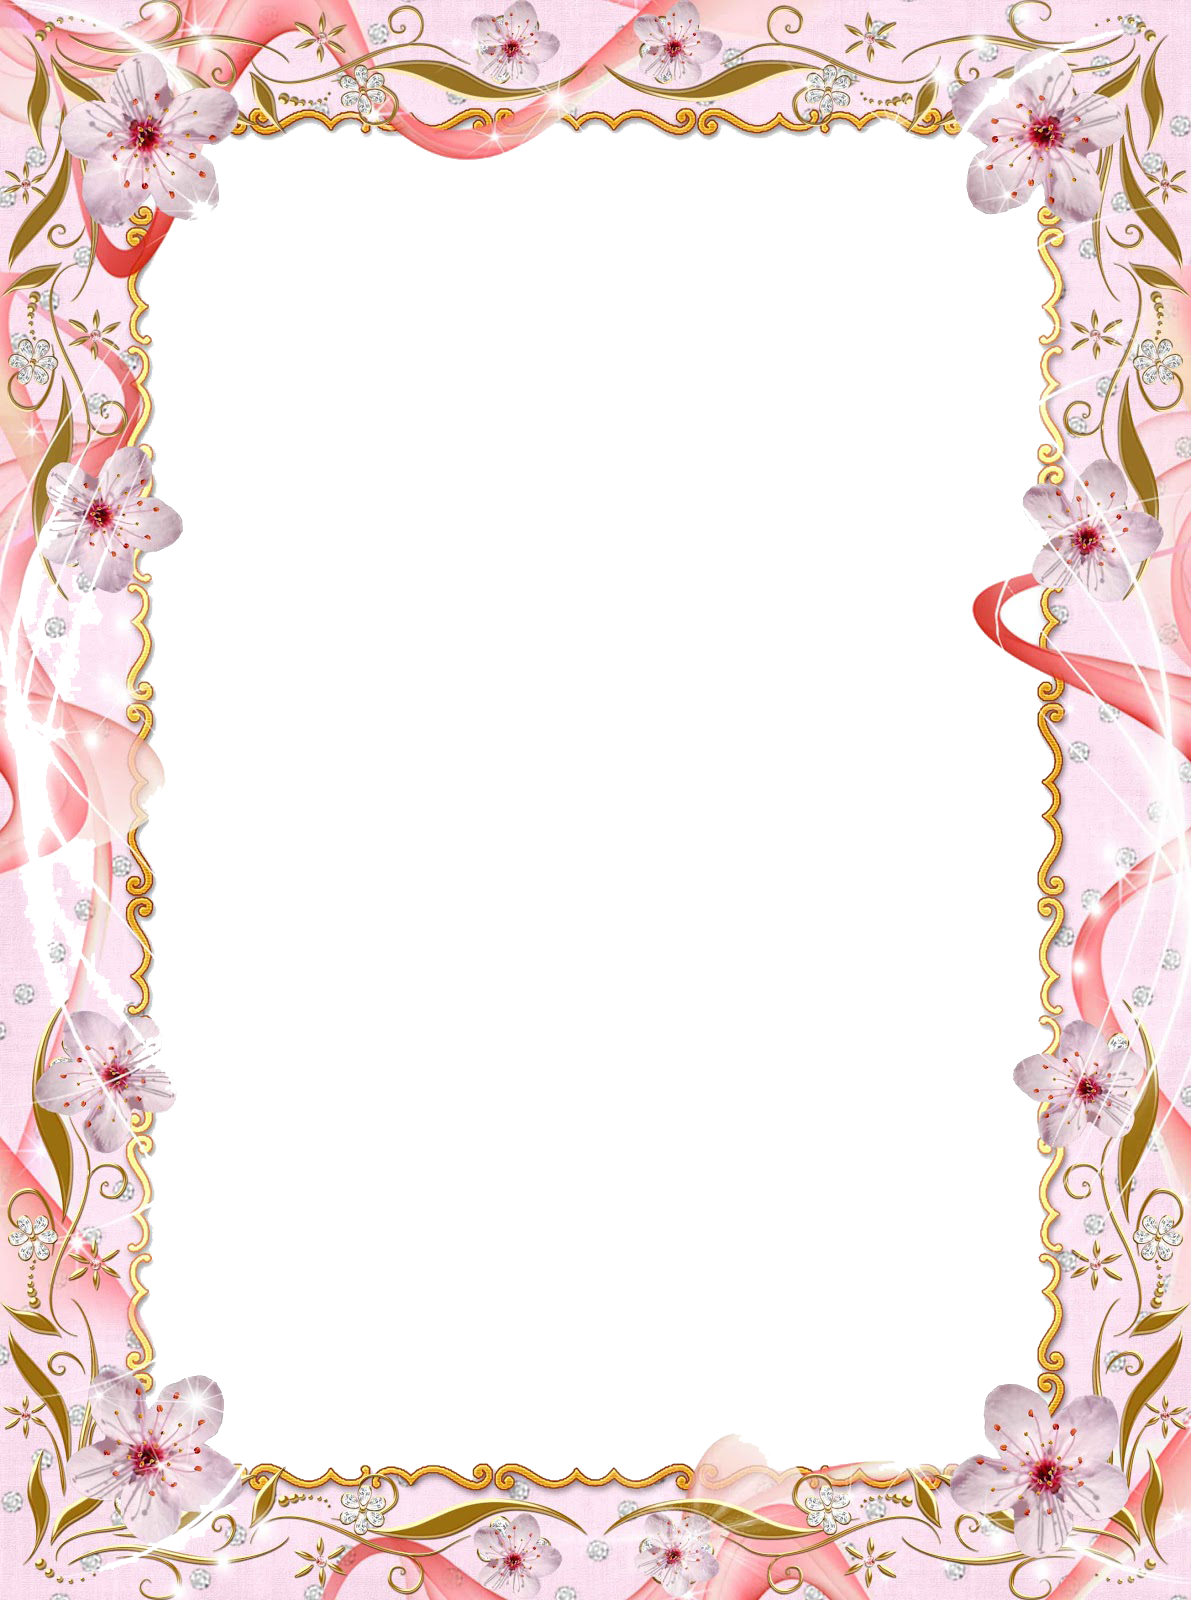 Frame png hd. Wedding transparent images all